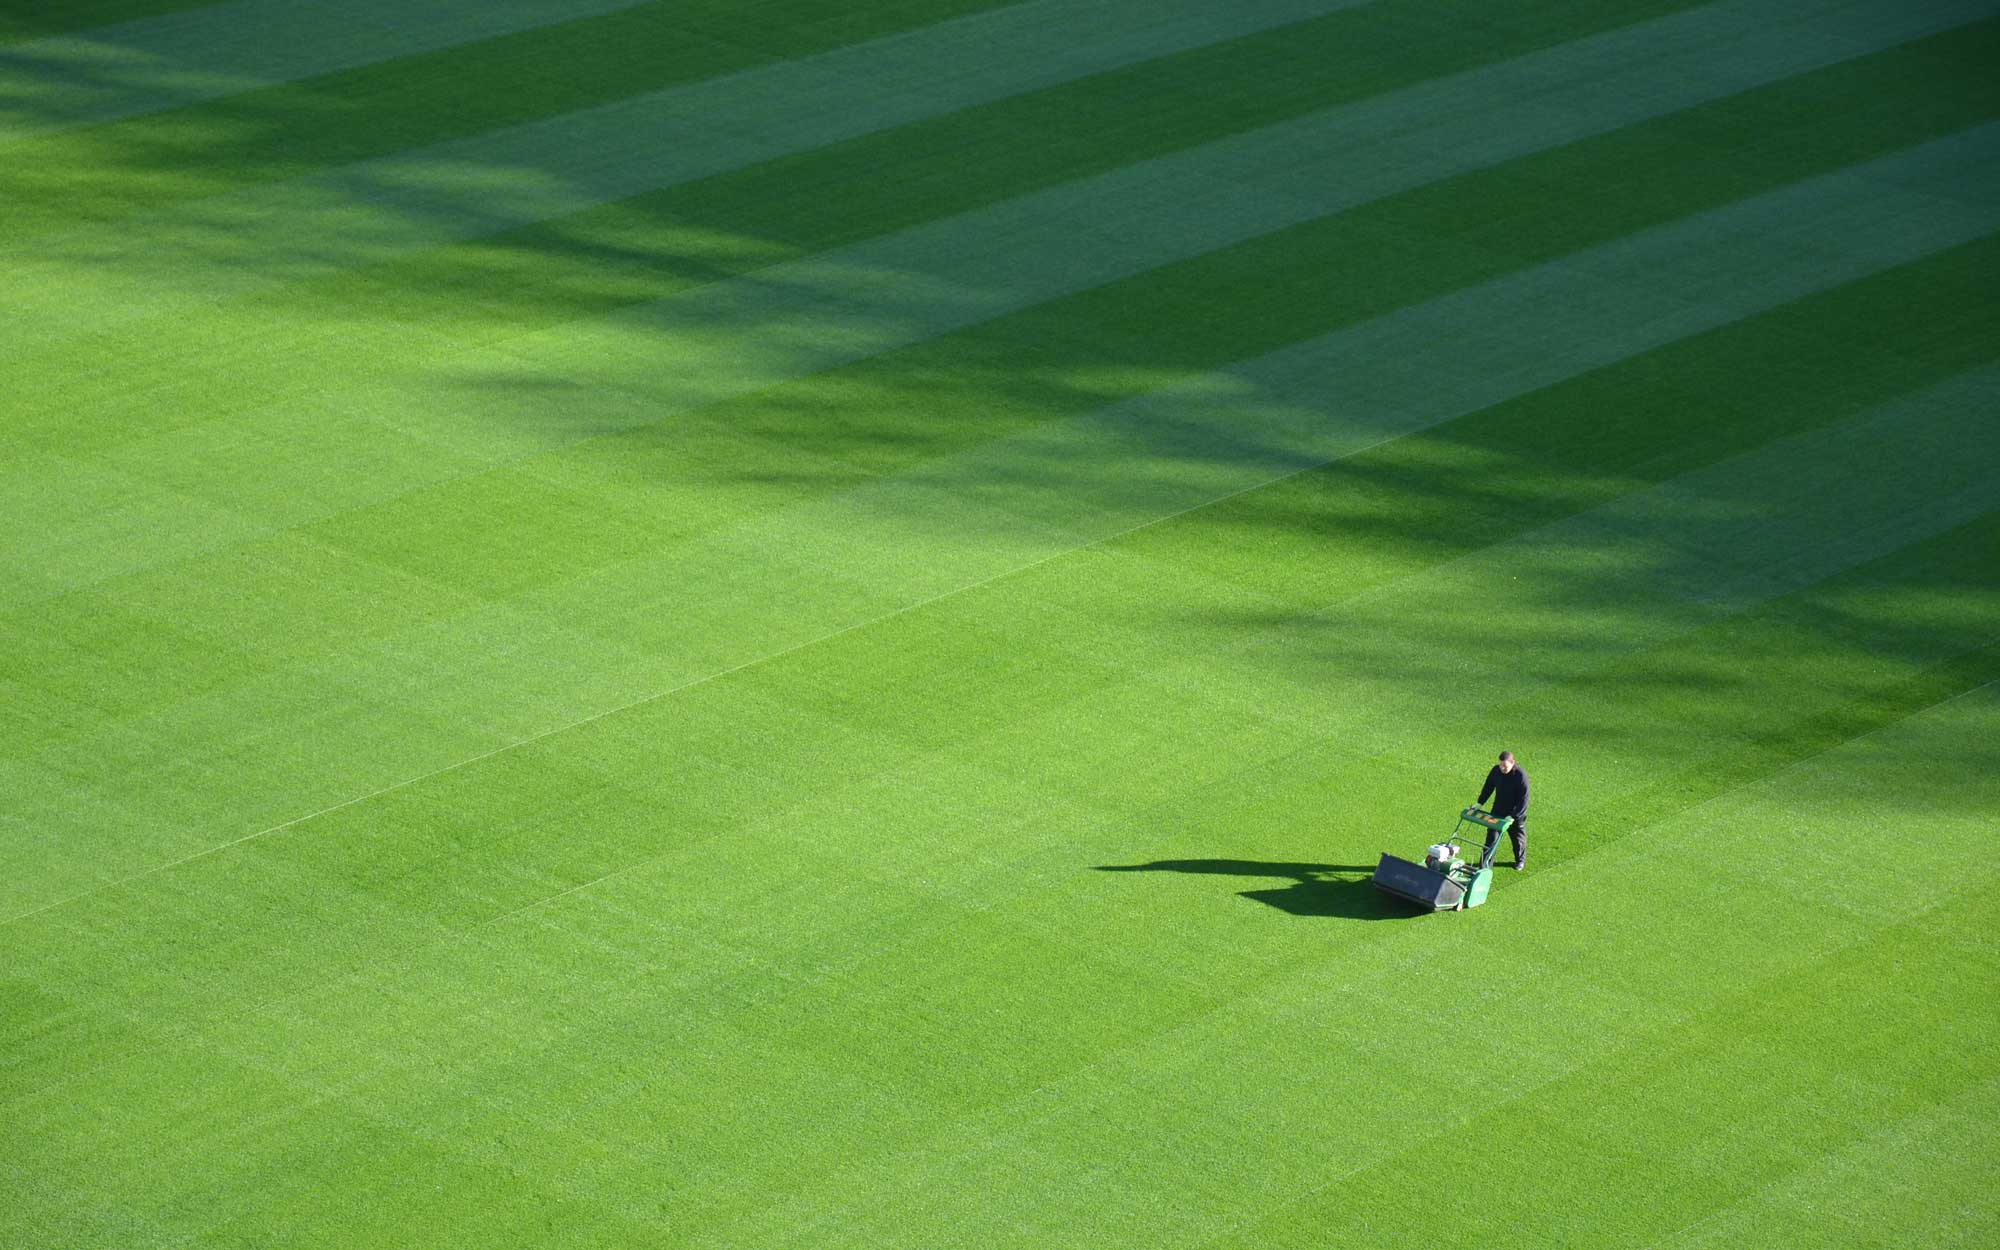 A man mowing a massive lawn with a push mower.